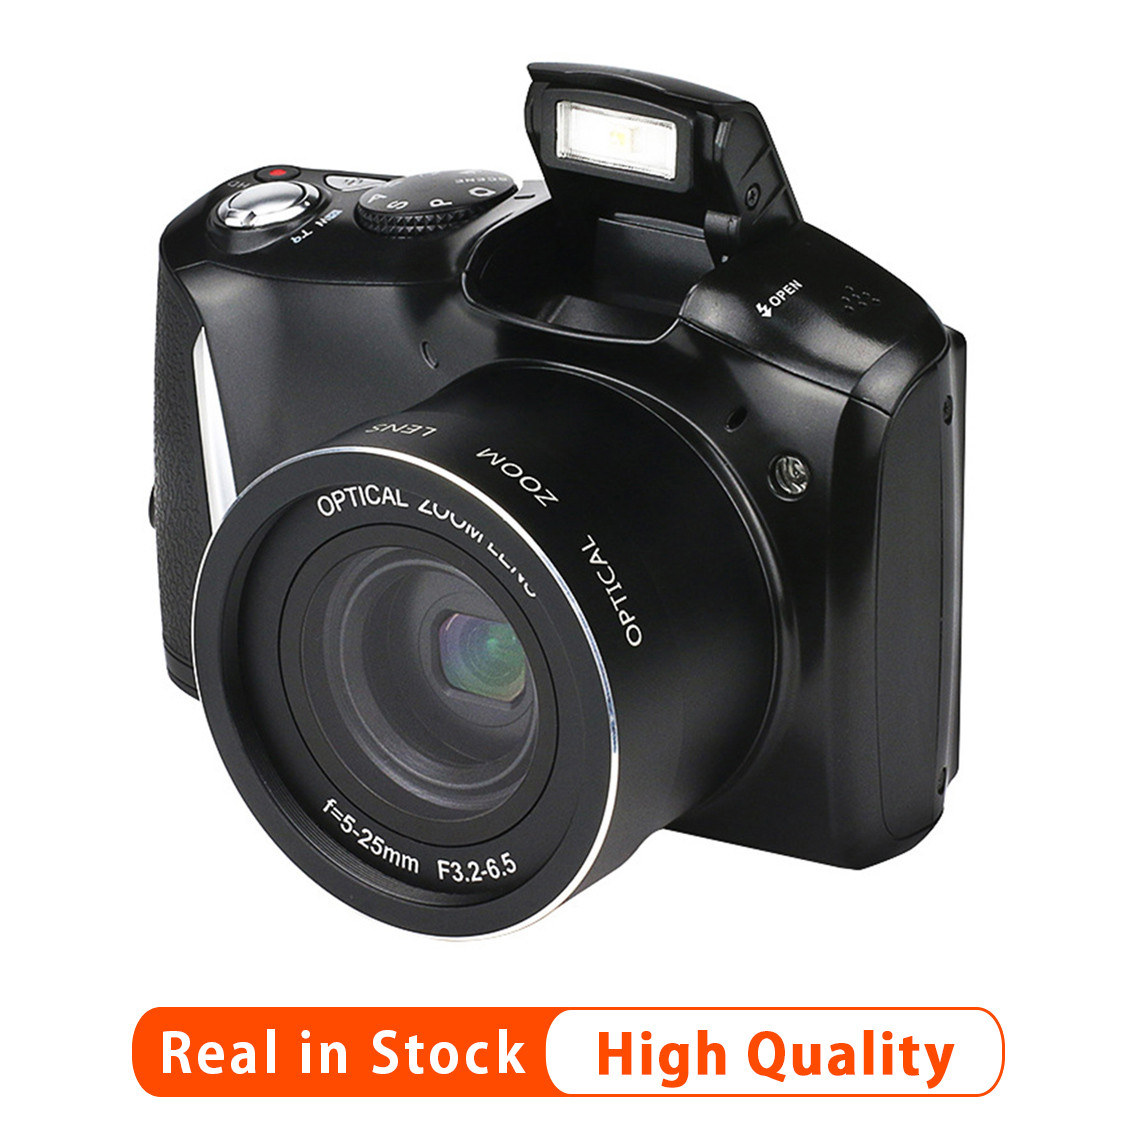 "New 24 Megapixel HD Telephoto SLR Digital Camera 14MP CMOS 20 Times Digital Zoom SLR Camera WIth 3.5"" Screen(China)"